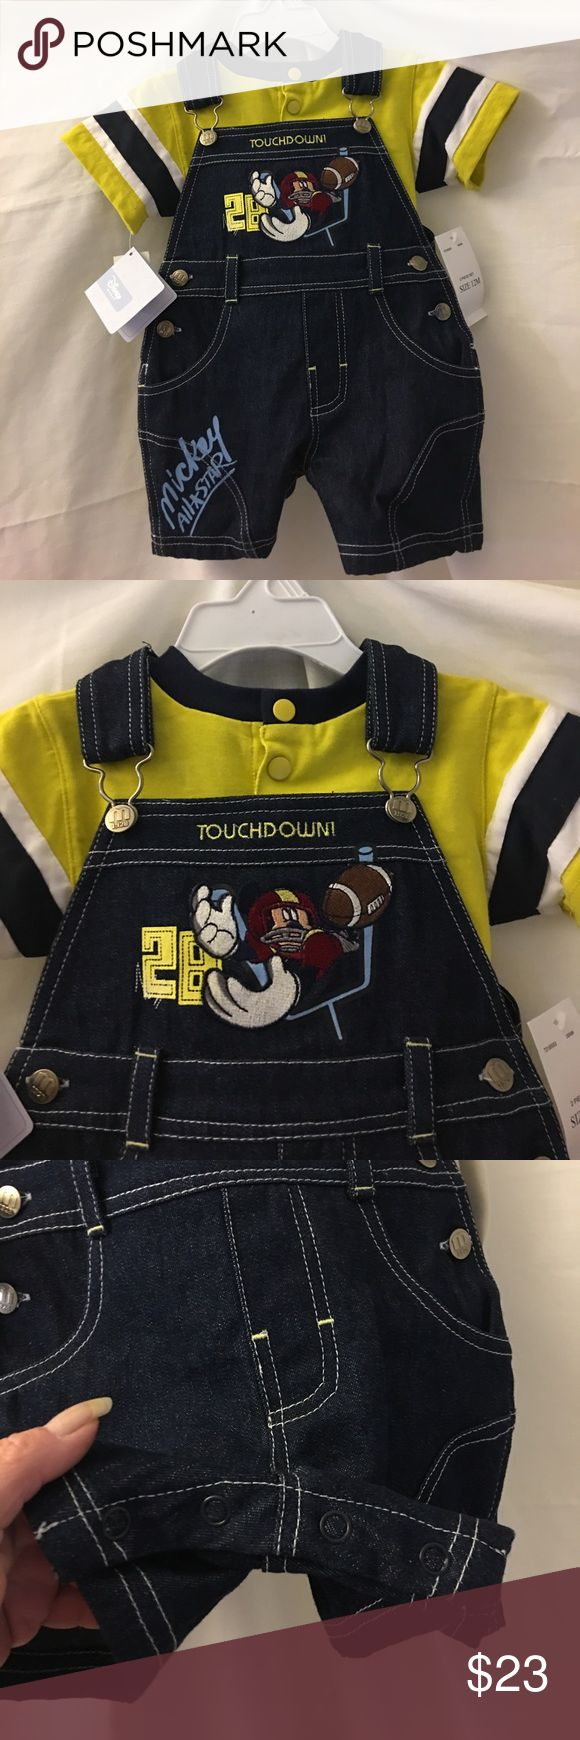 Disney Mickey baby boys overall set Cute Disney Mickey football overalls, baby boys size 12 months.  Denim overalls with yellow short sleeve top.  100% cotton, machine wash.  Please message me with any questions. Disney Matching Sets